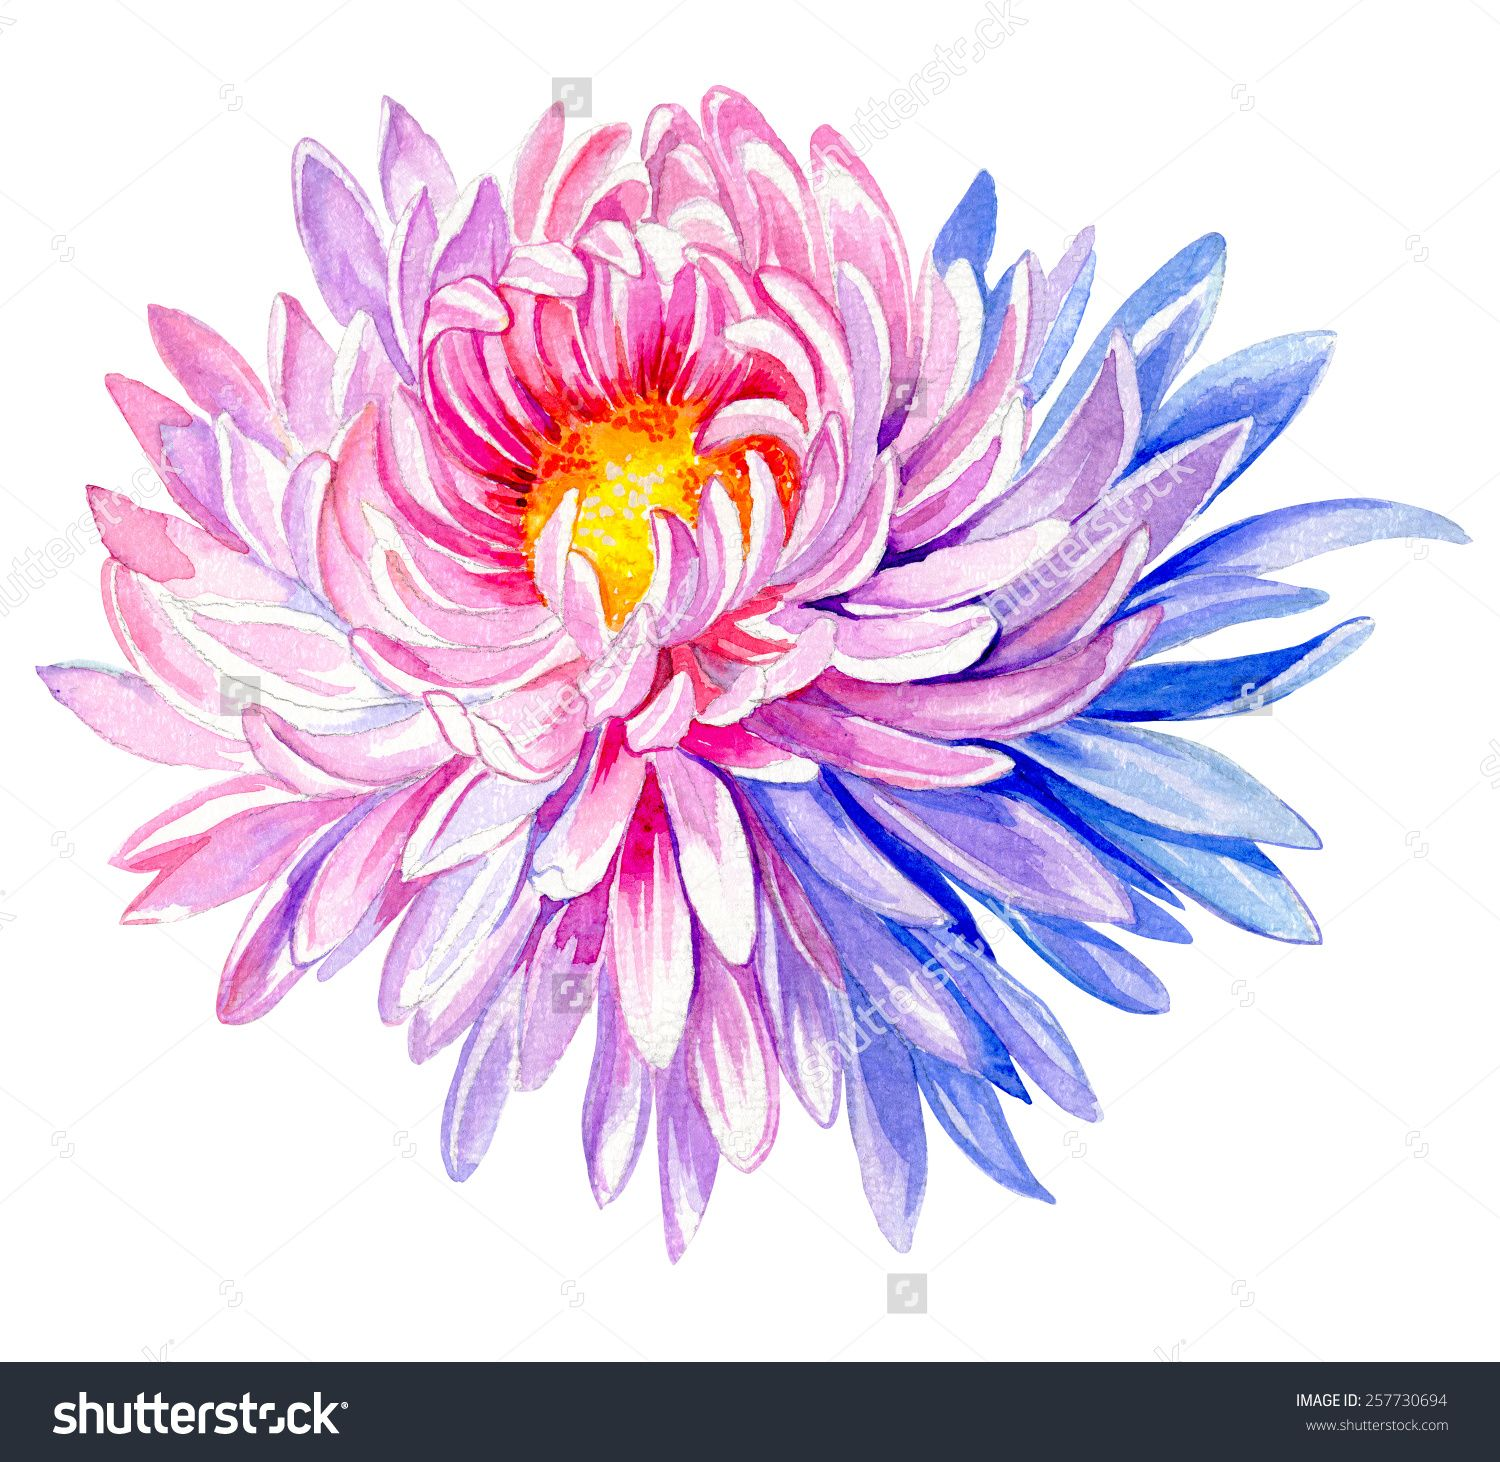 Stock Photo Large And Very Detailed Painting Of Chrysanthemum Flower Large Astera Daisy In Water Chrysanthemum Tattoo Birth Flower Tattoos Aster Flower Tattoos